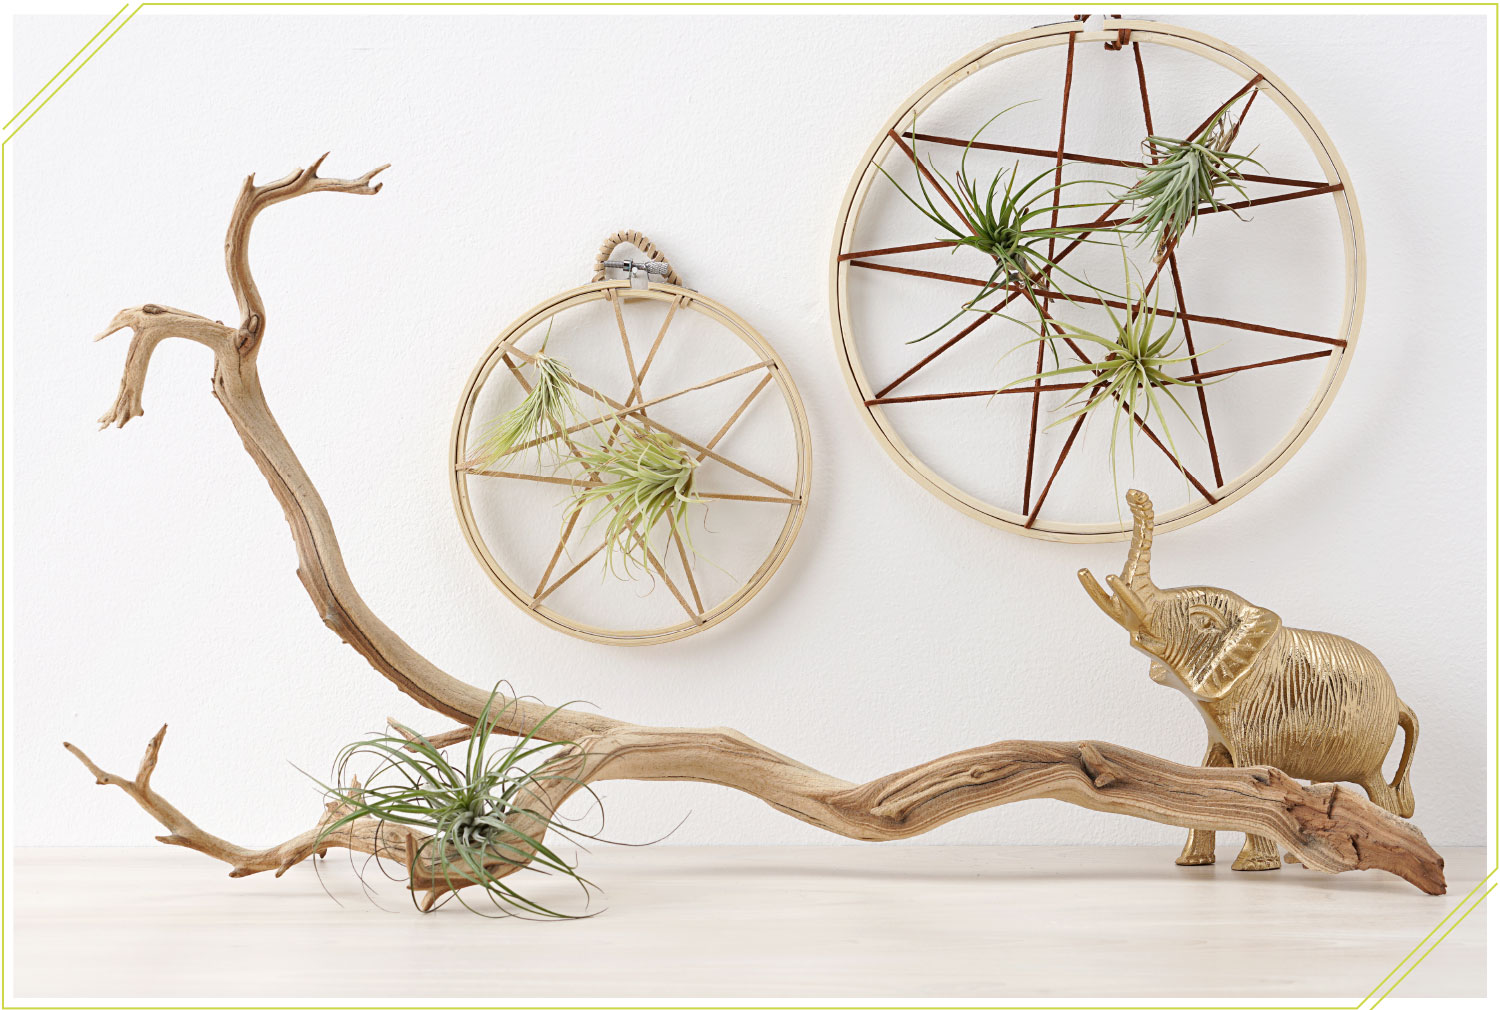 Bohemian Decor Idea: DIY Air Plant String Art. Bohemian decor diy. Bohemian decorating ideas for living room. Bohemian decor on a budget. Boho wall decor, bohemian style, decorating with air plants.